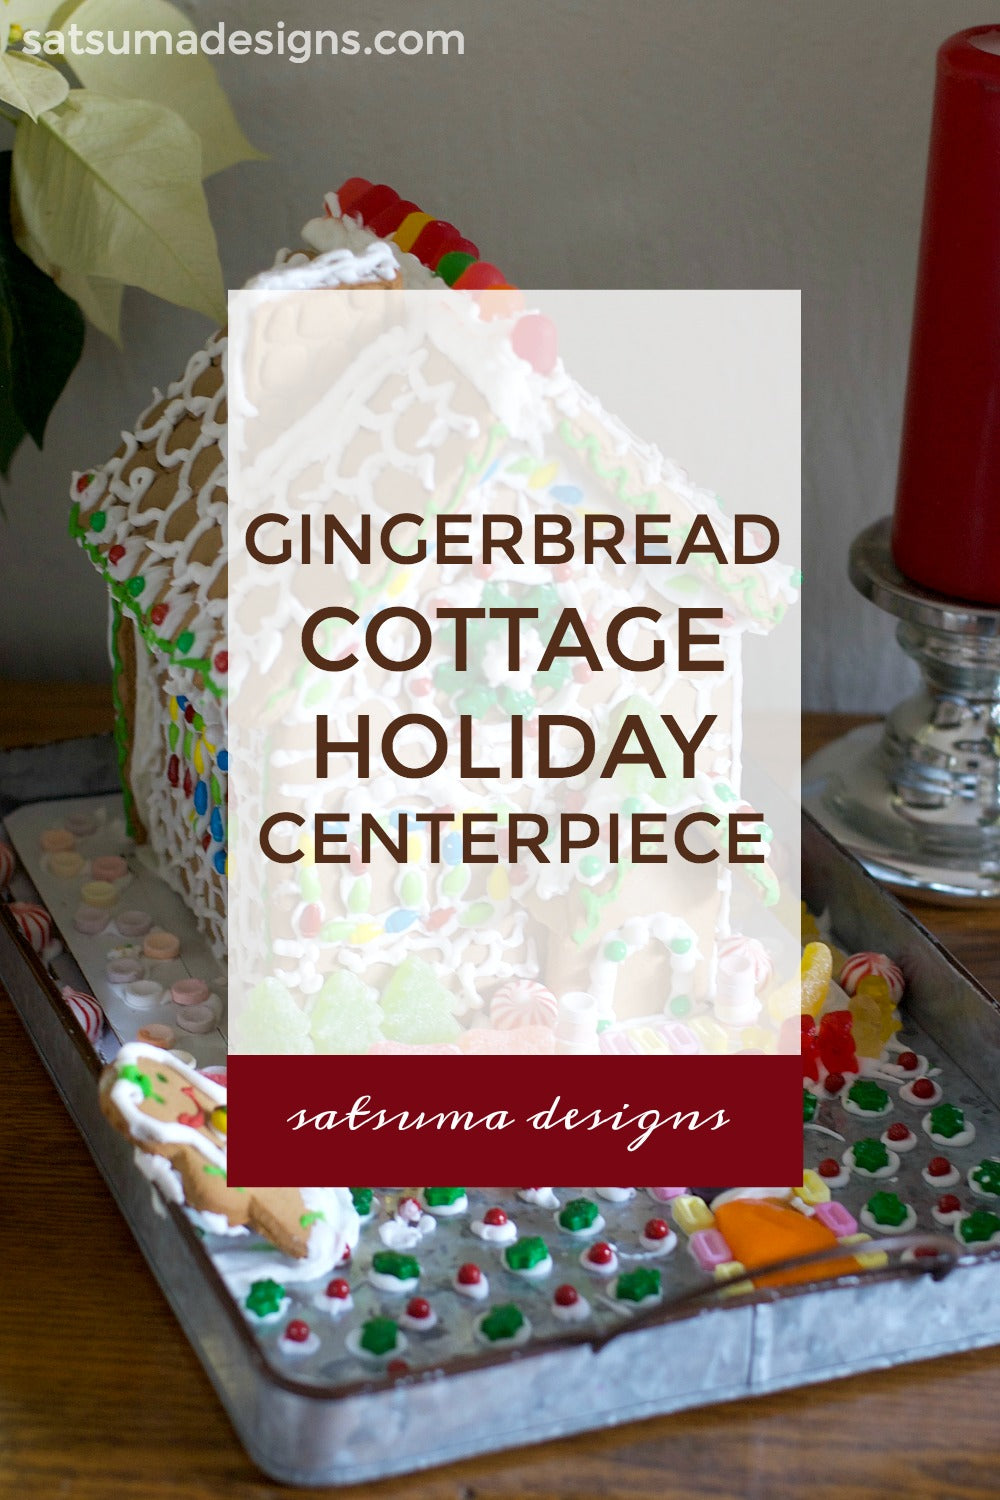 Gingerbread Cottage Holiday Centerpiece